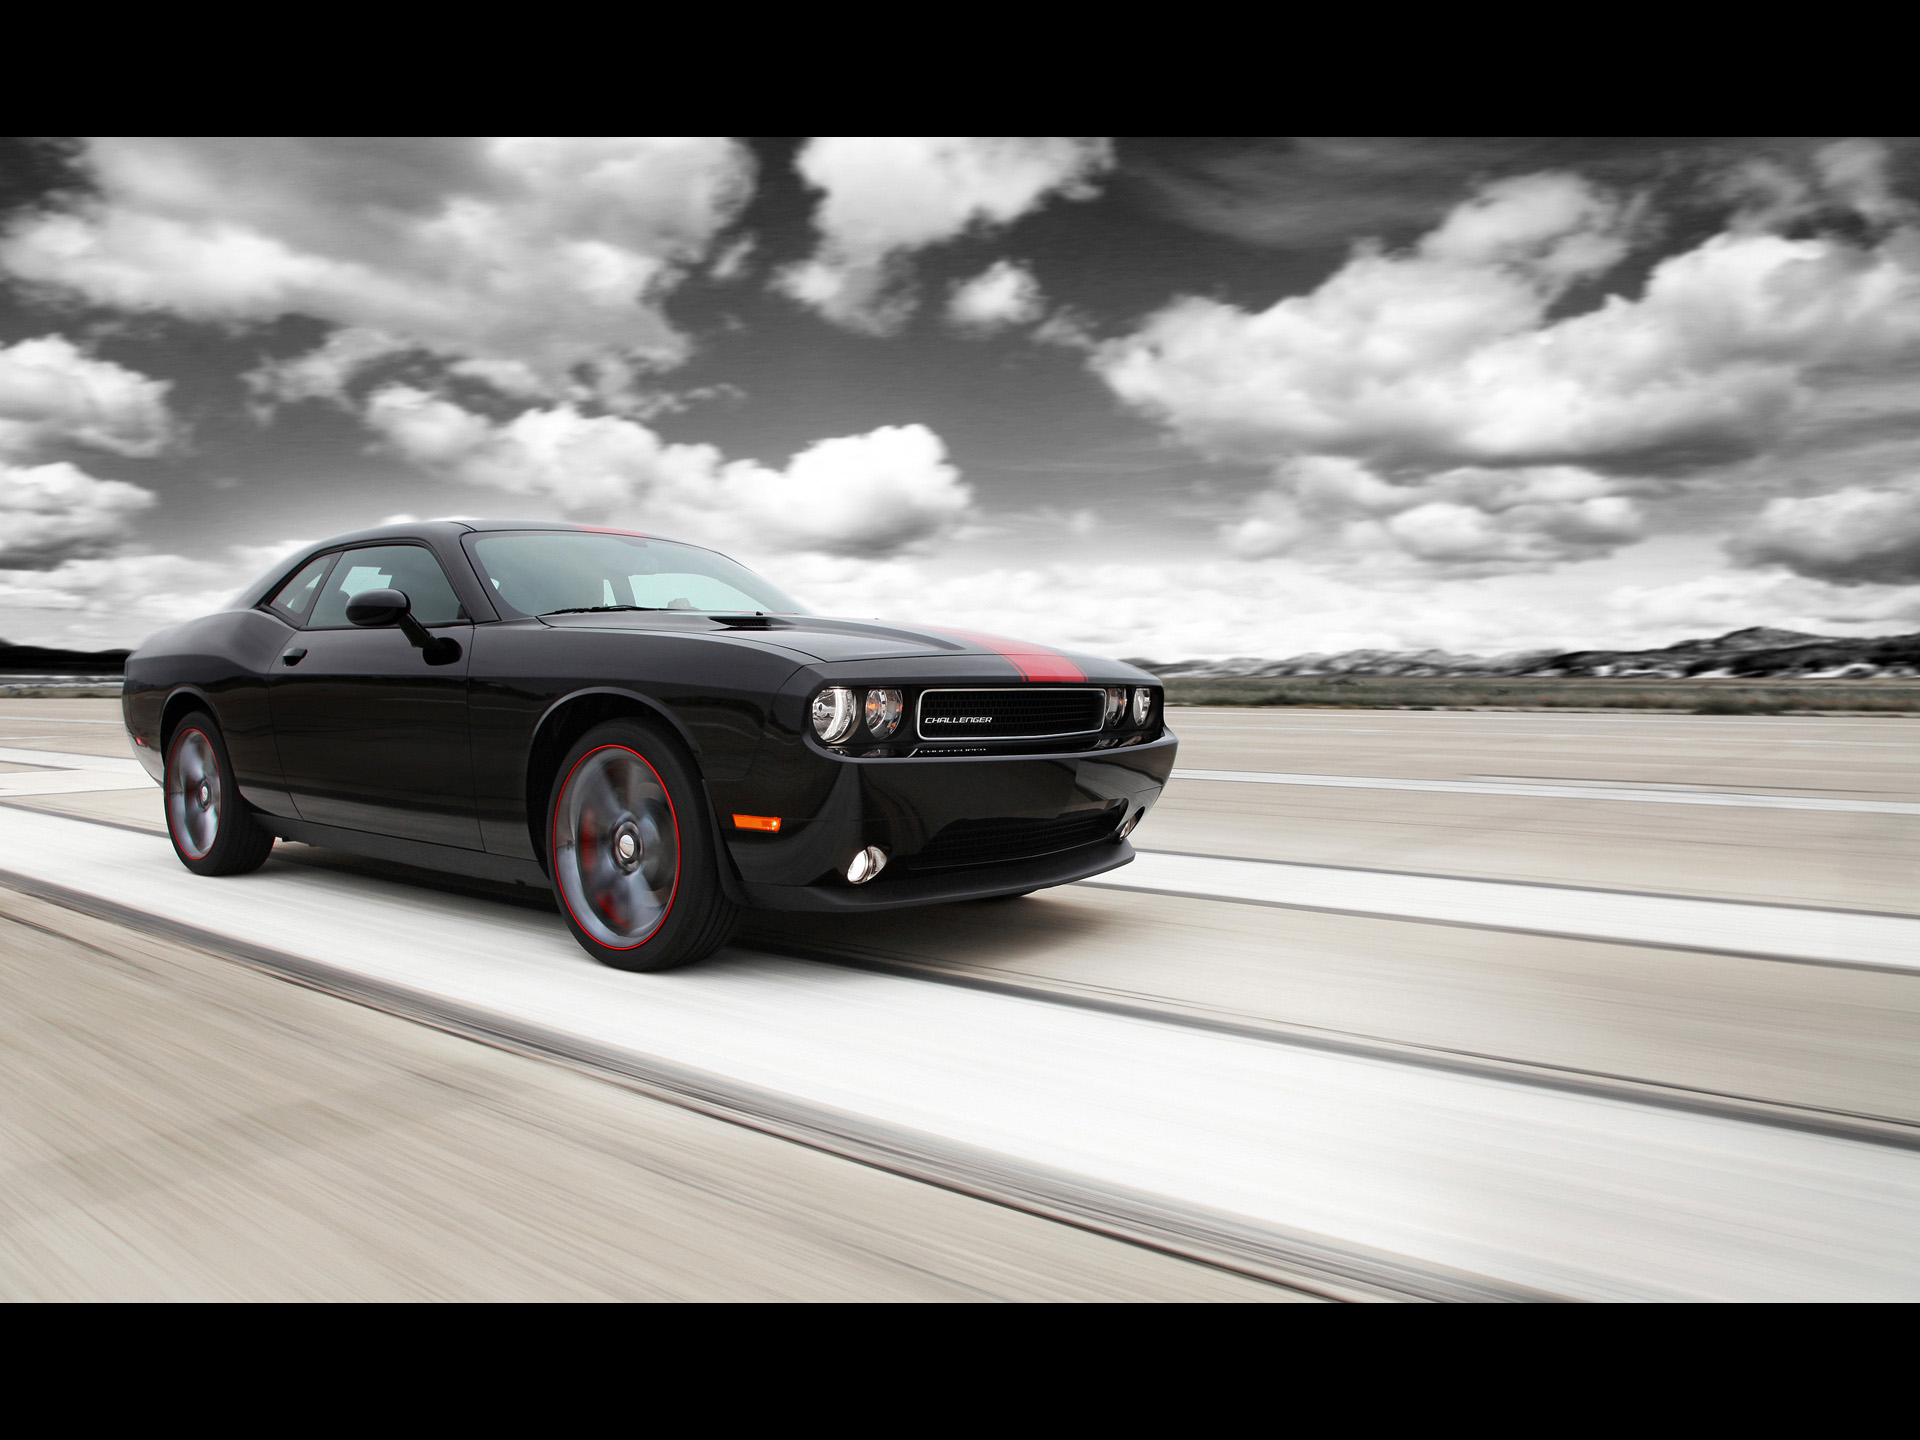 1920x1440 - Dodge Challenger Rallye Wallpapers 28